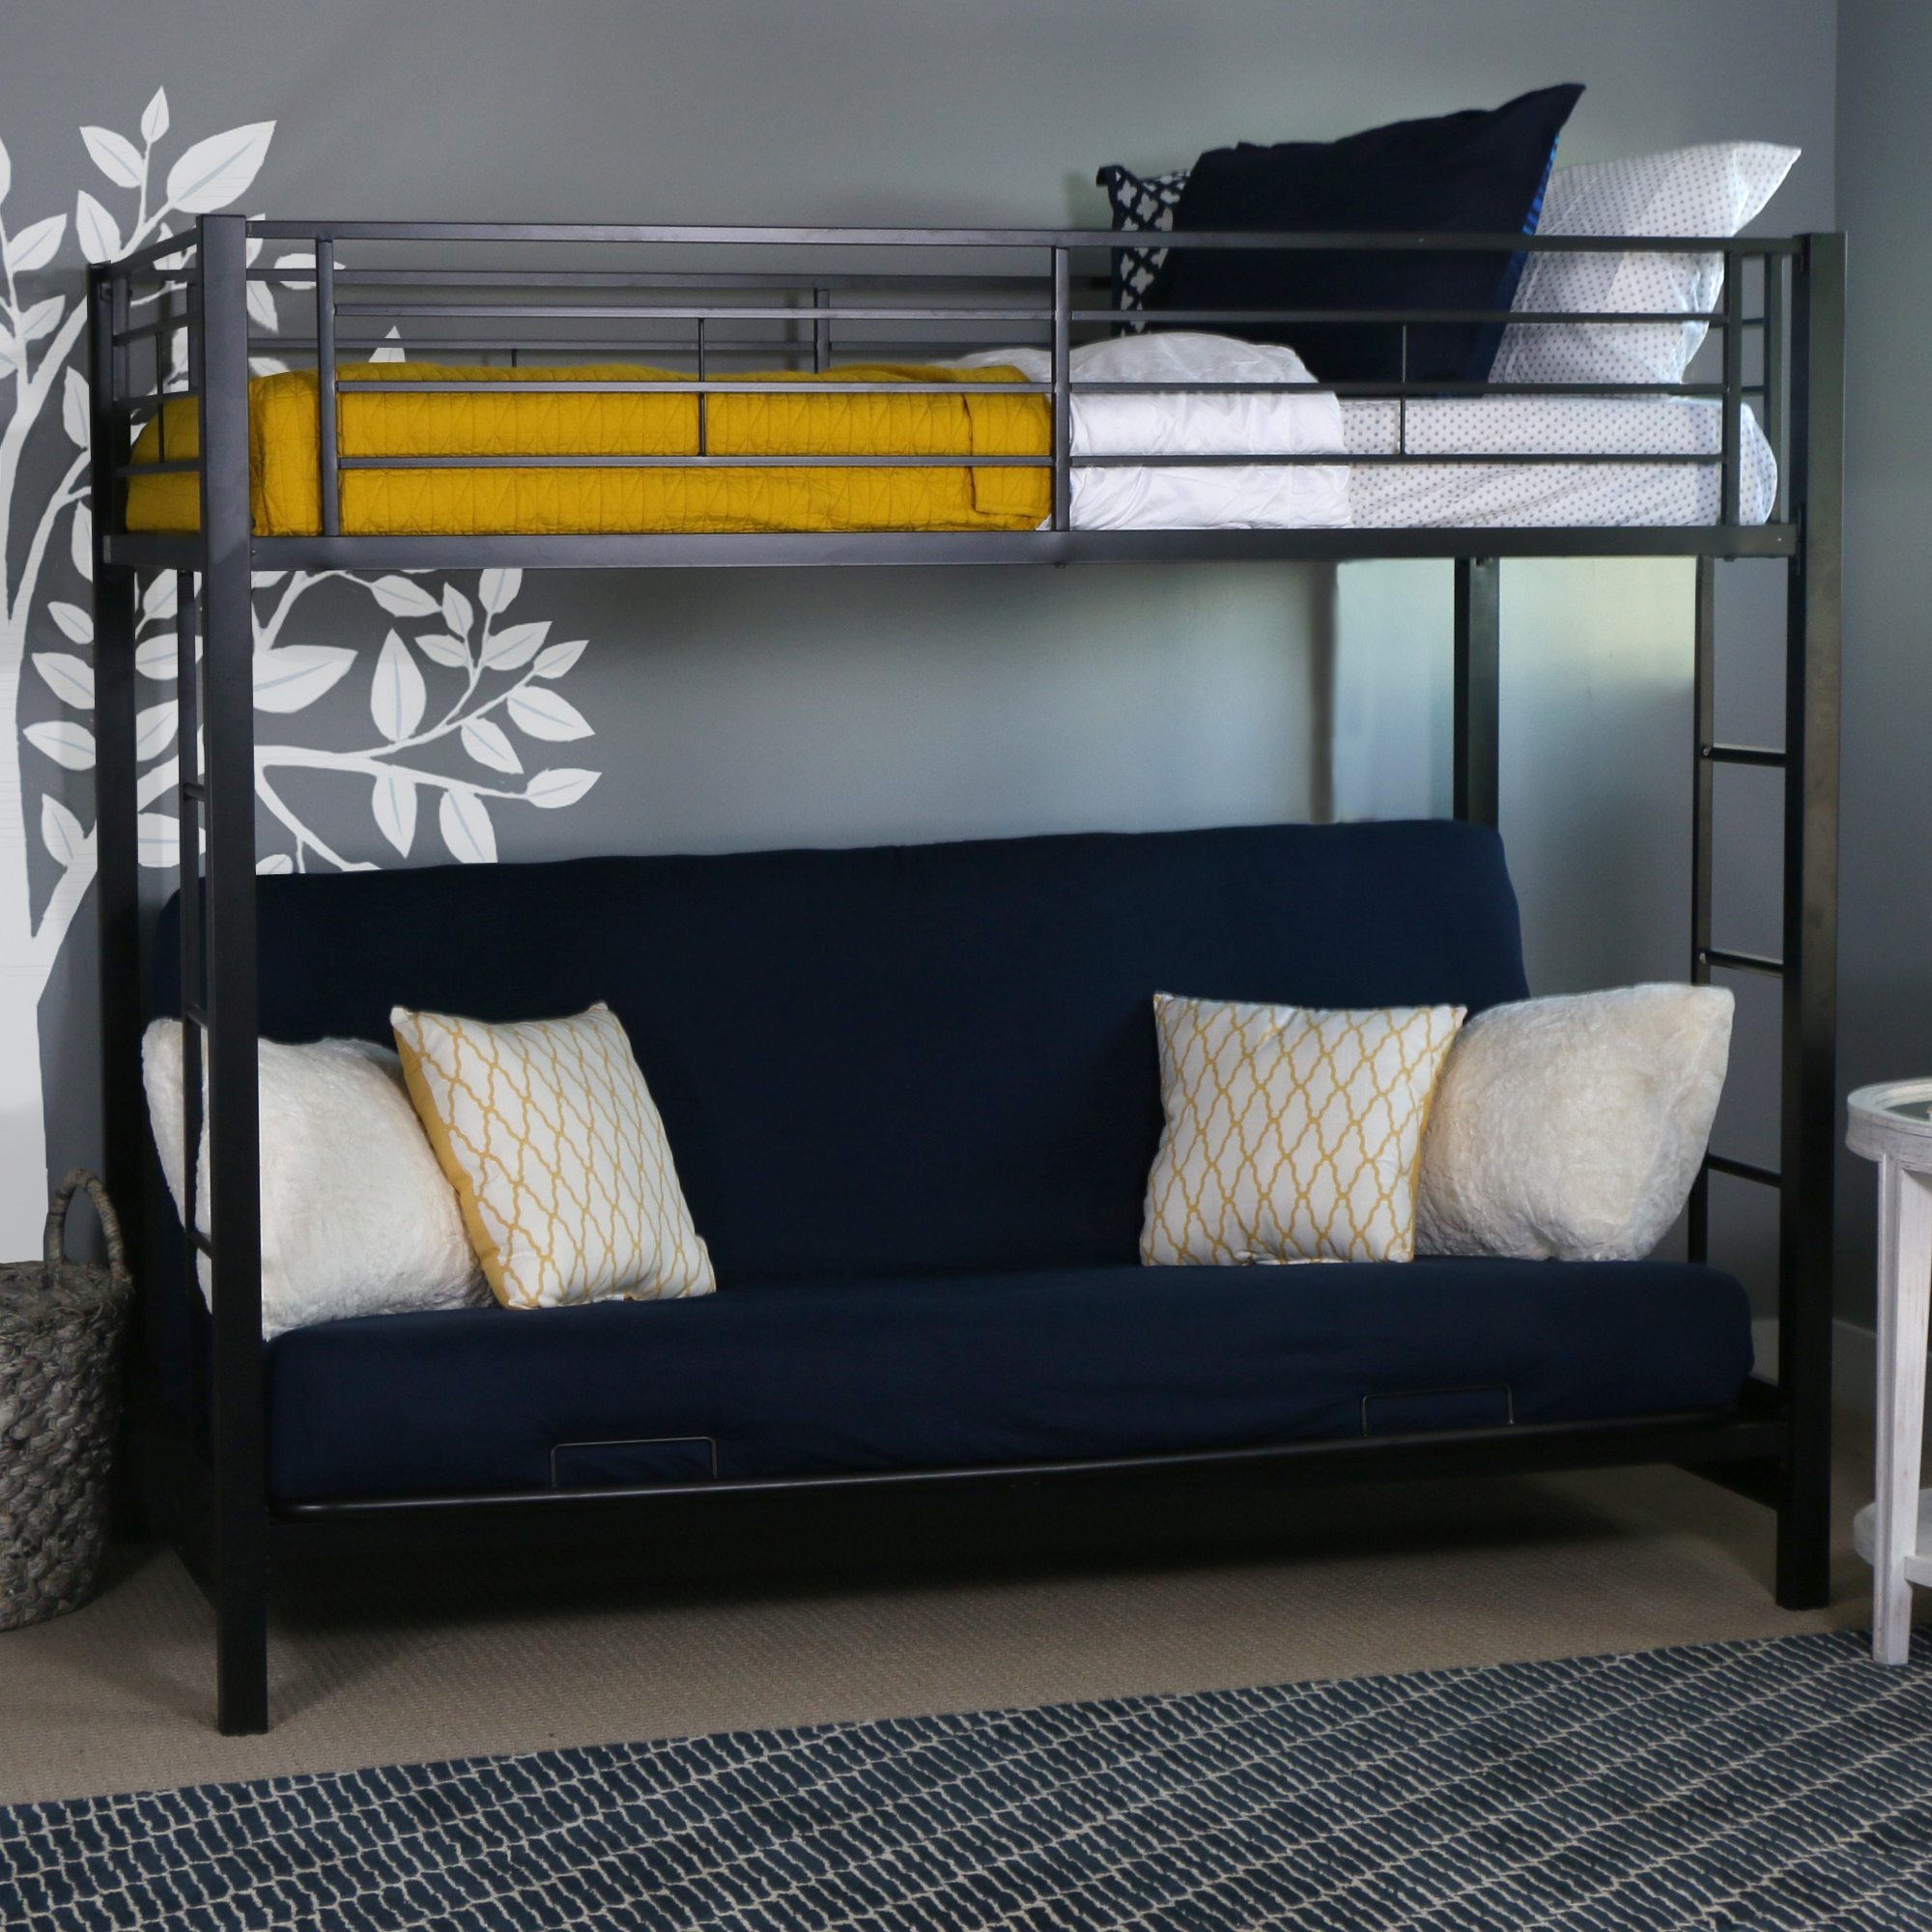 cool bunk beds for adults wall mounted slumber comfort 6 twin pack bunk bed spring mattress mattresses only walmartcom